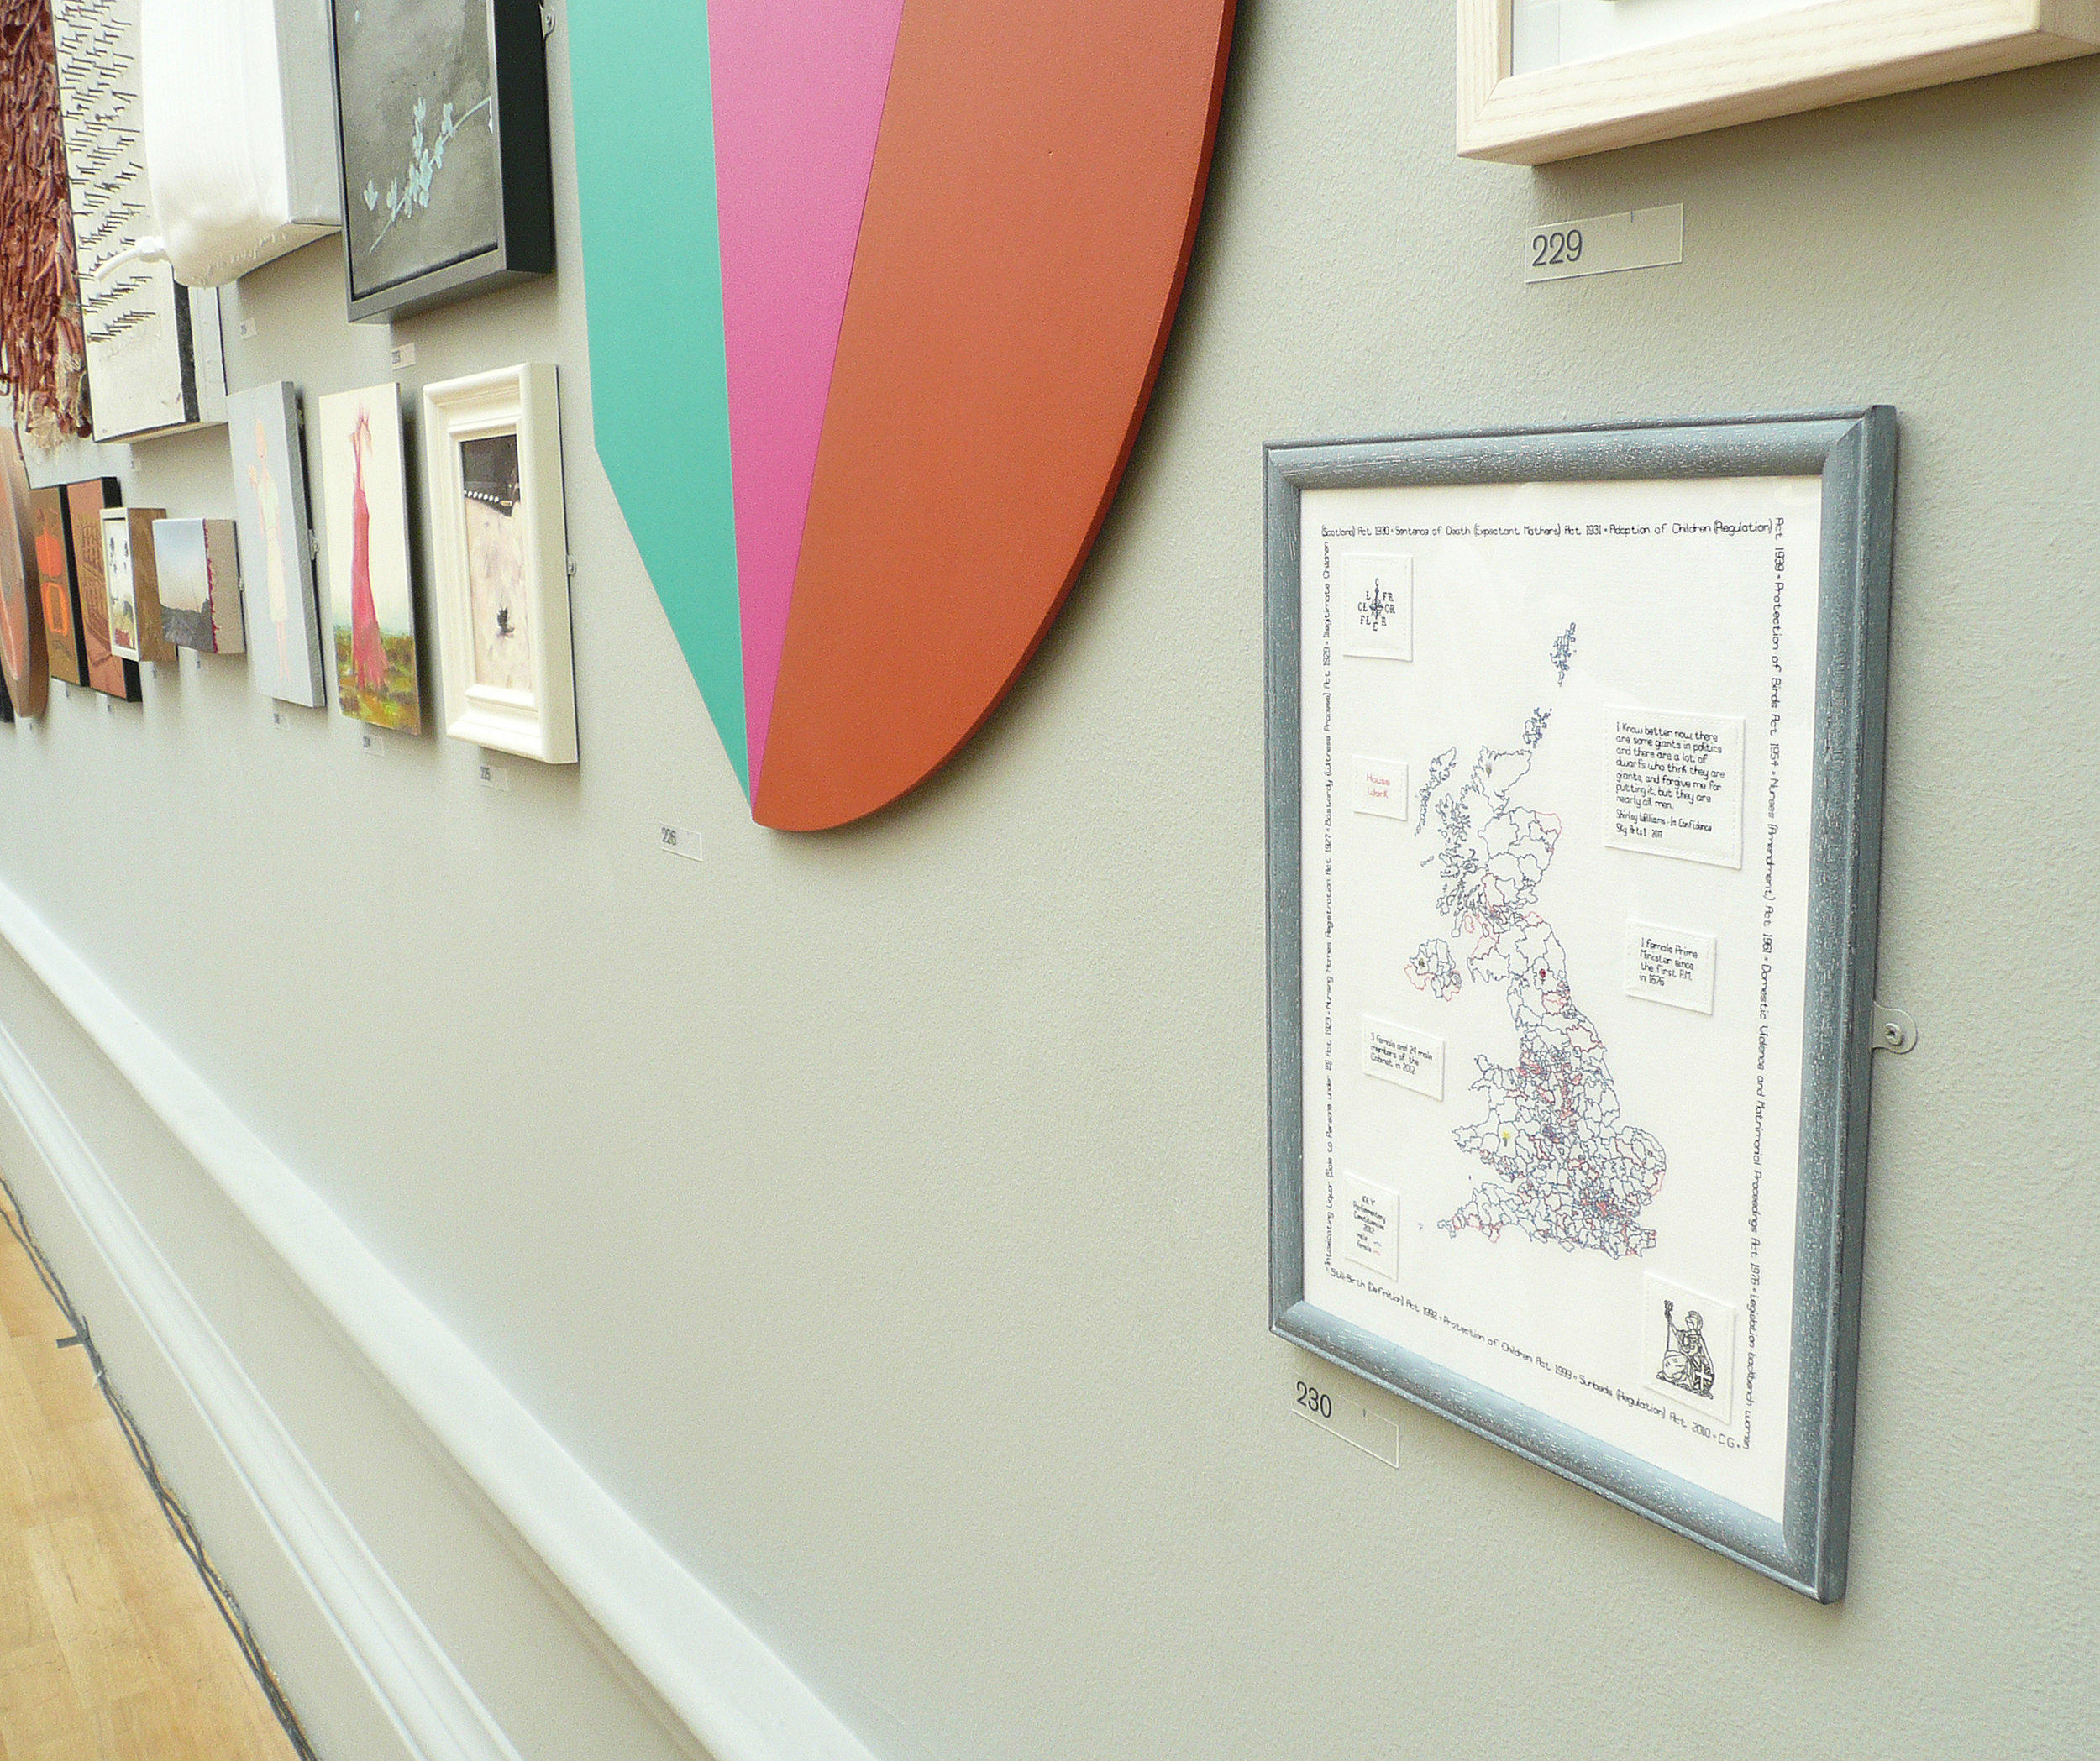 In-situ at the Royal Academy